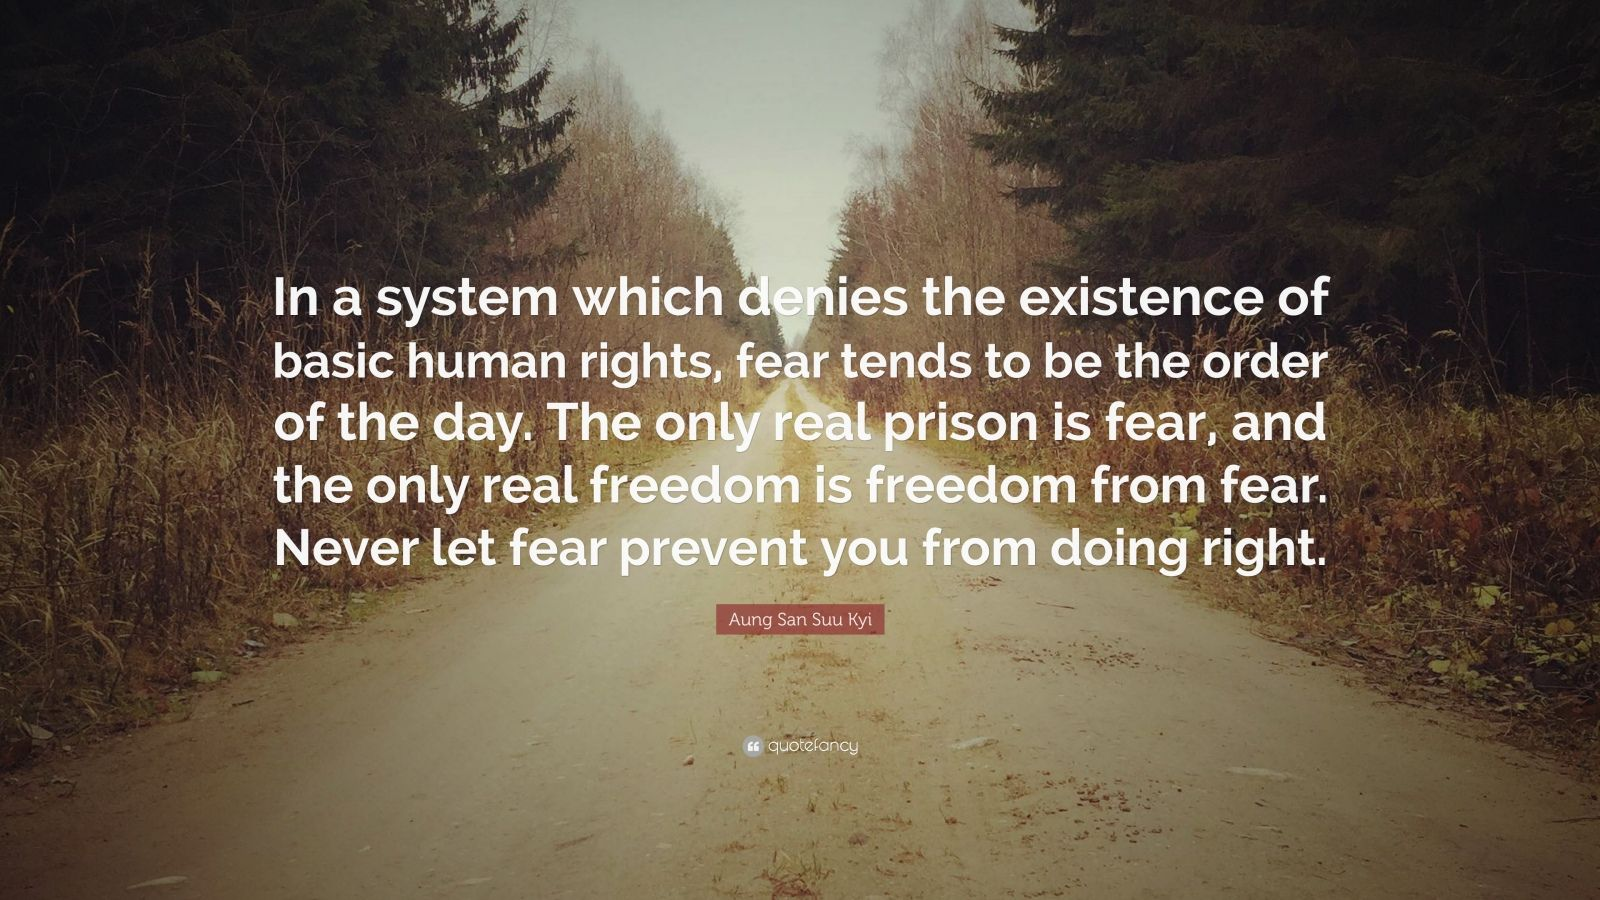 "Aung San Suu Kyi Quote: ""In a system which denies the existence of basic human rights, fear tends to be the order of the day. The only real prison is fear, and the only real freedom is freedom from fear. Never let fear prevent you from doing right."""